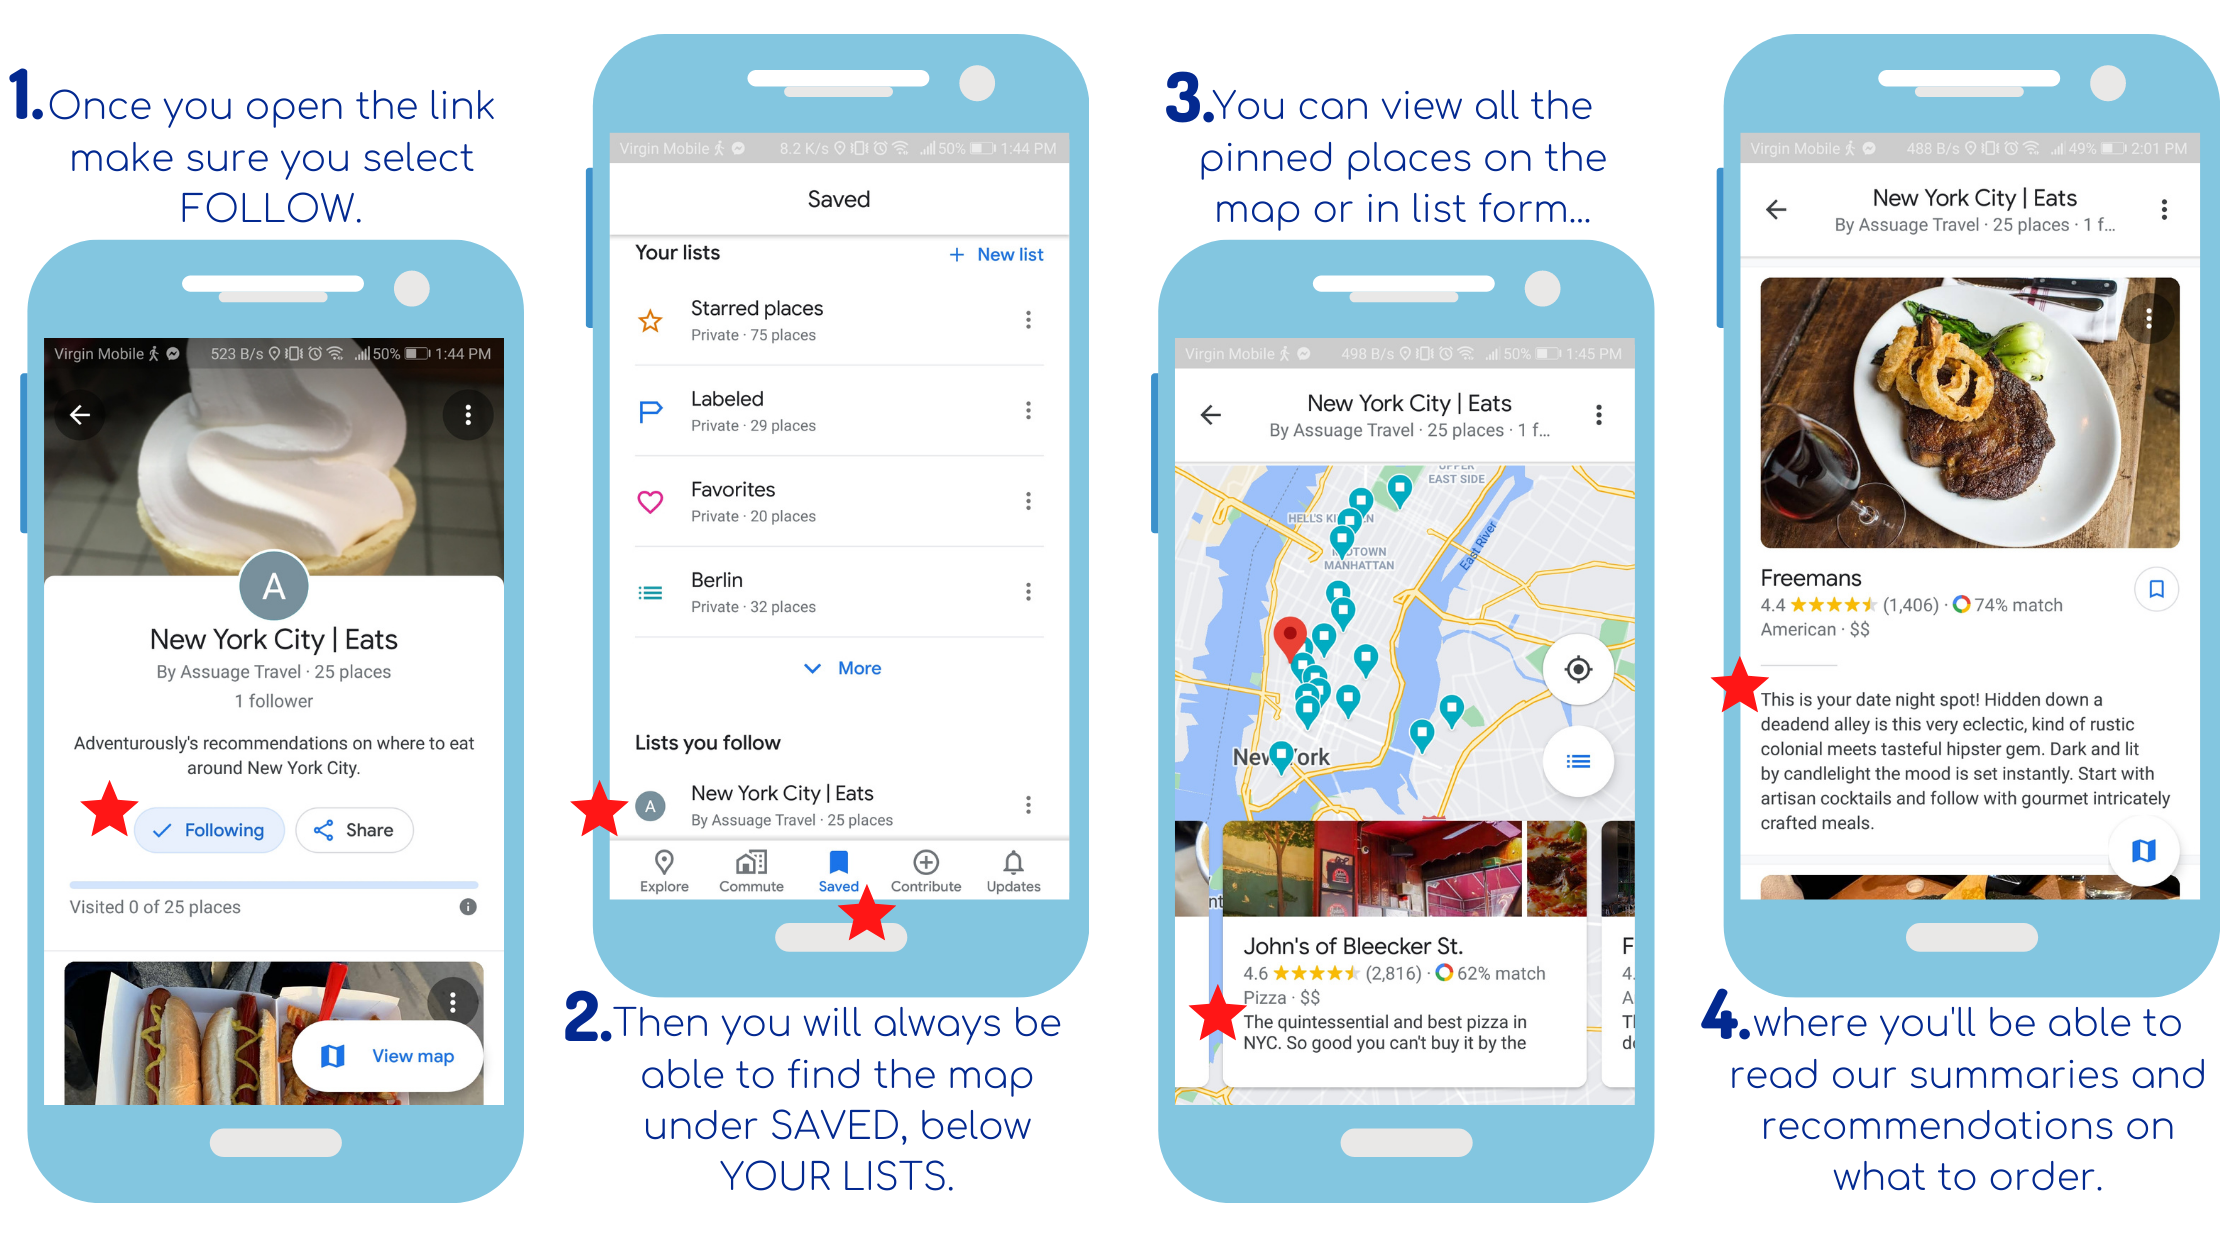 How to access and save the map in your Google Maps.